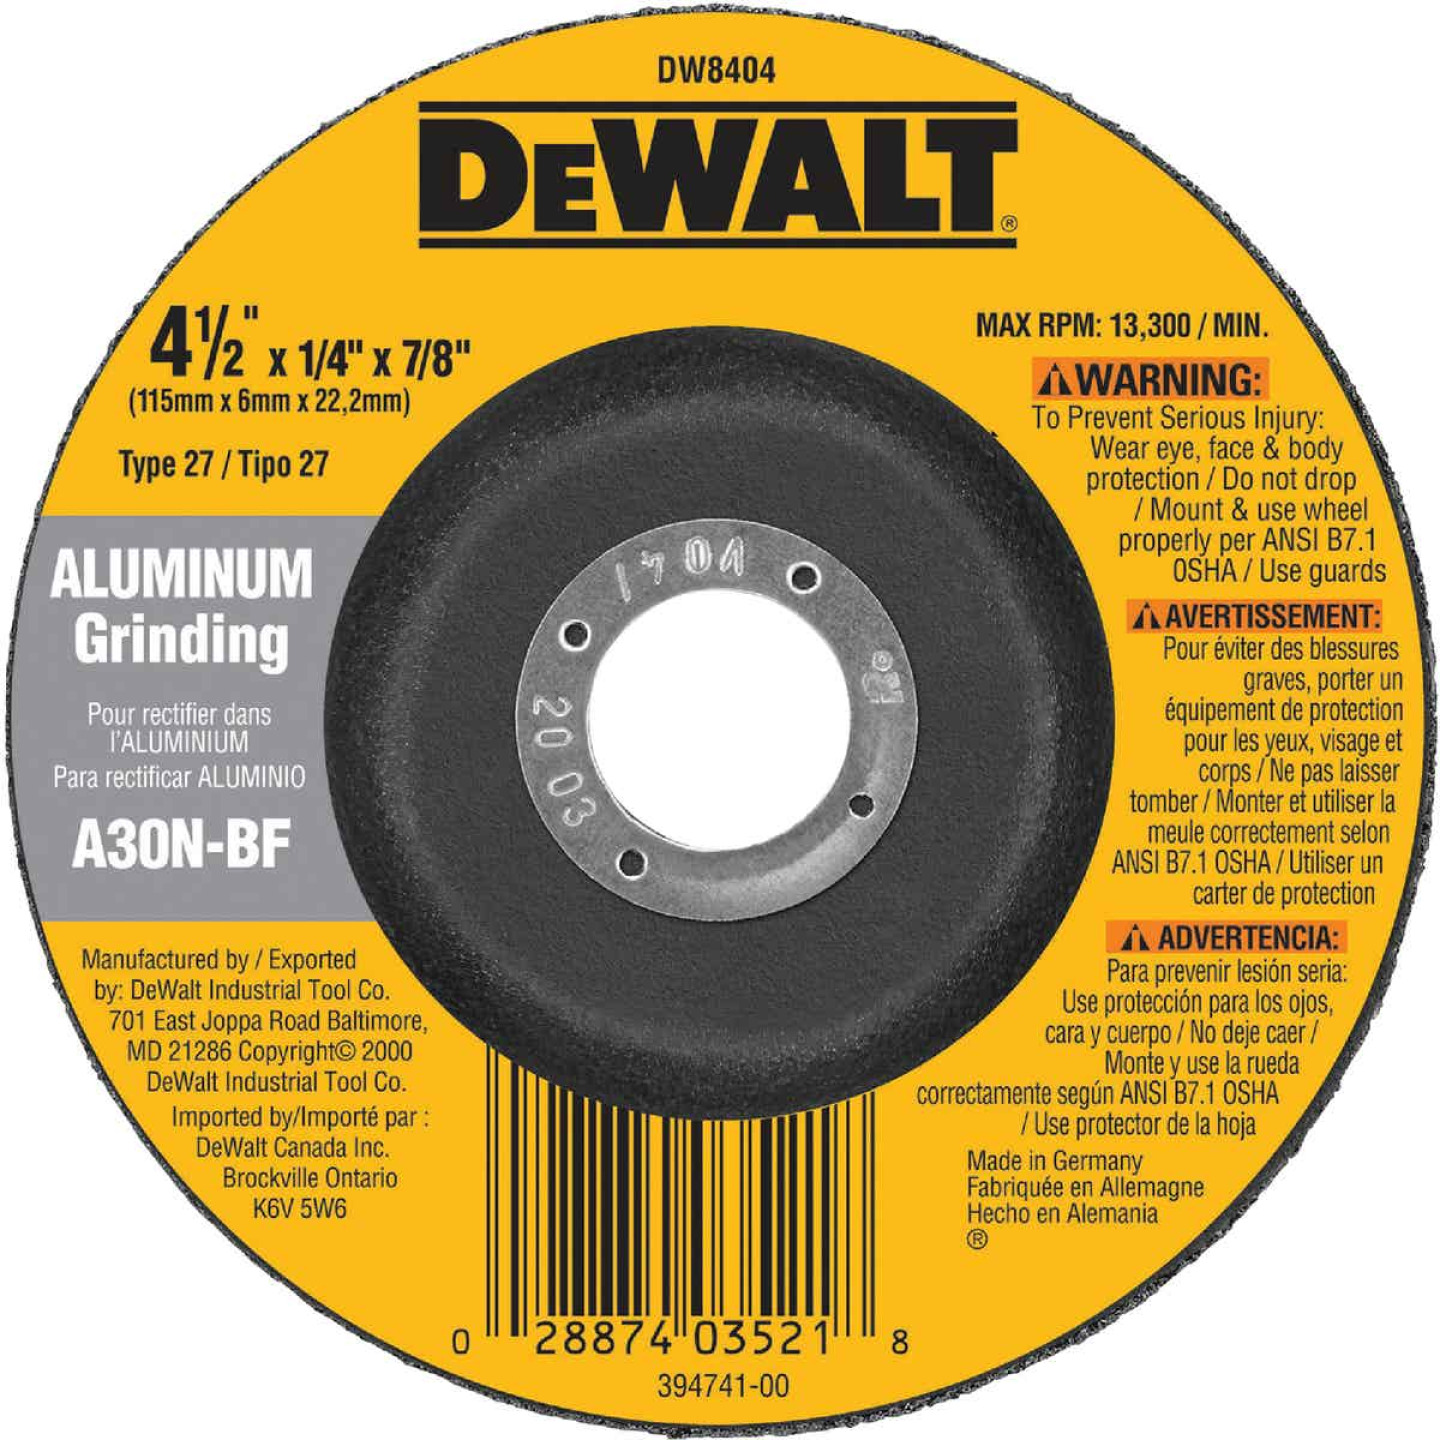 DeWalt HP Type 27 4-1/2 In. x 1/4 In. x 7/8 In. Aluminum Grinding Cut-Off Wheel Image 2